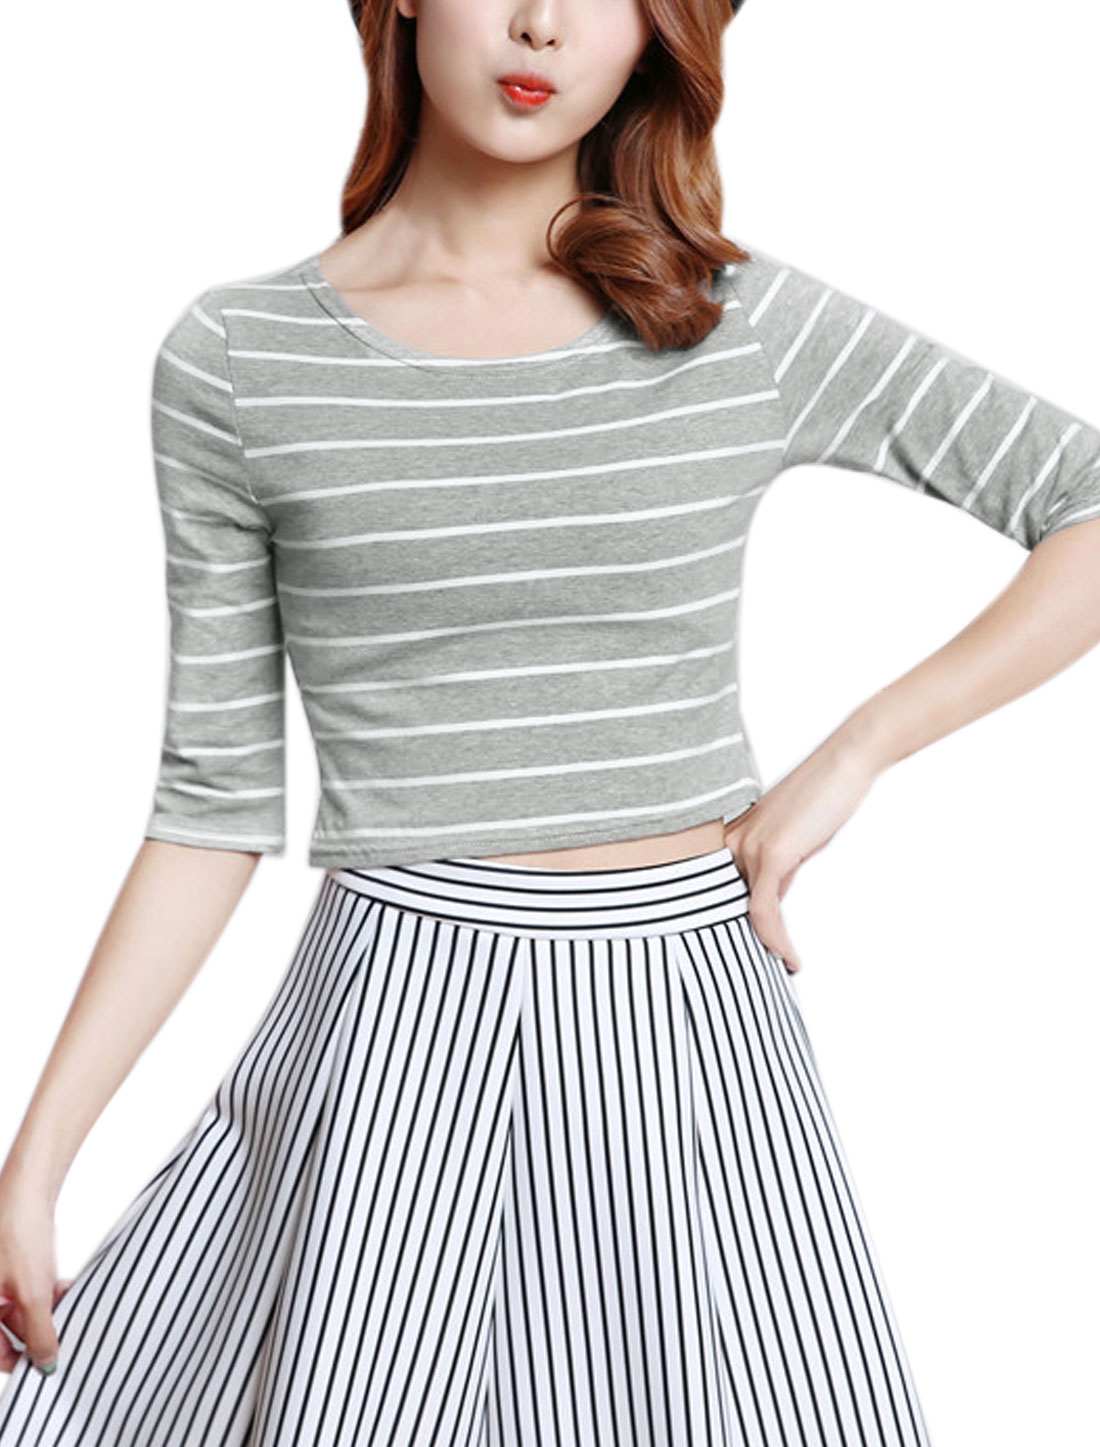 Women Round Neck Half Sleeves Stripes Slim Fit Crop Top Gray S